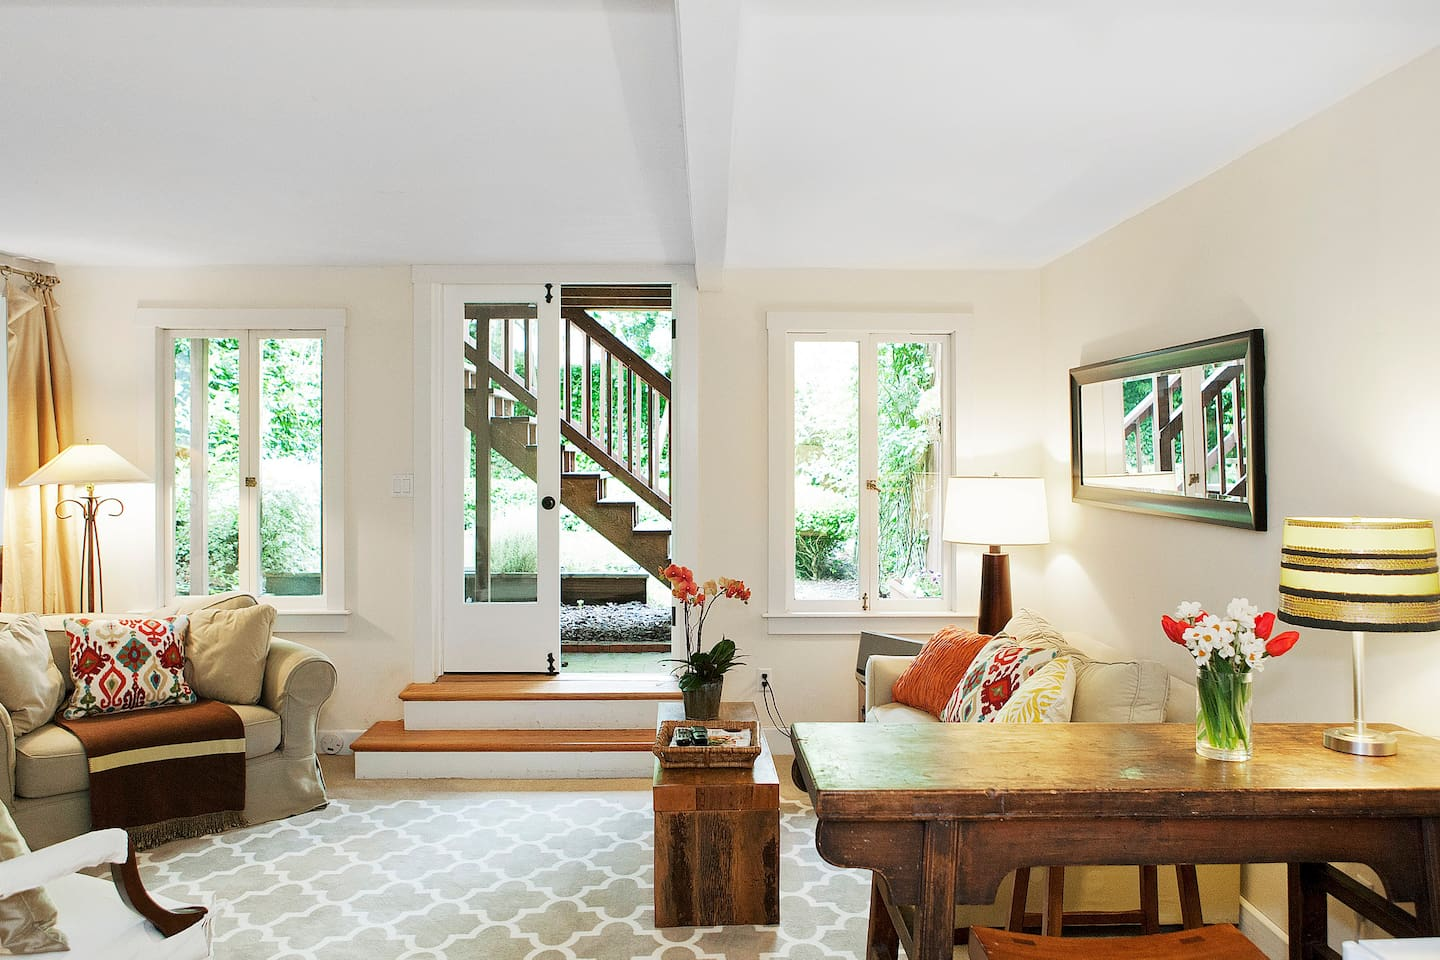 Enter through french doors to a light filled living room